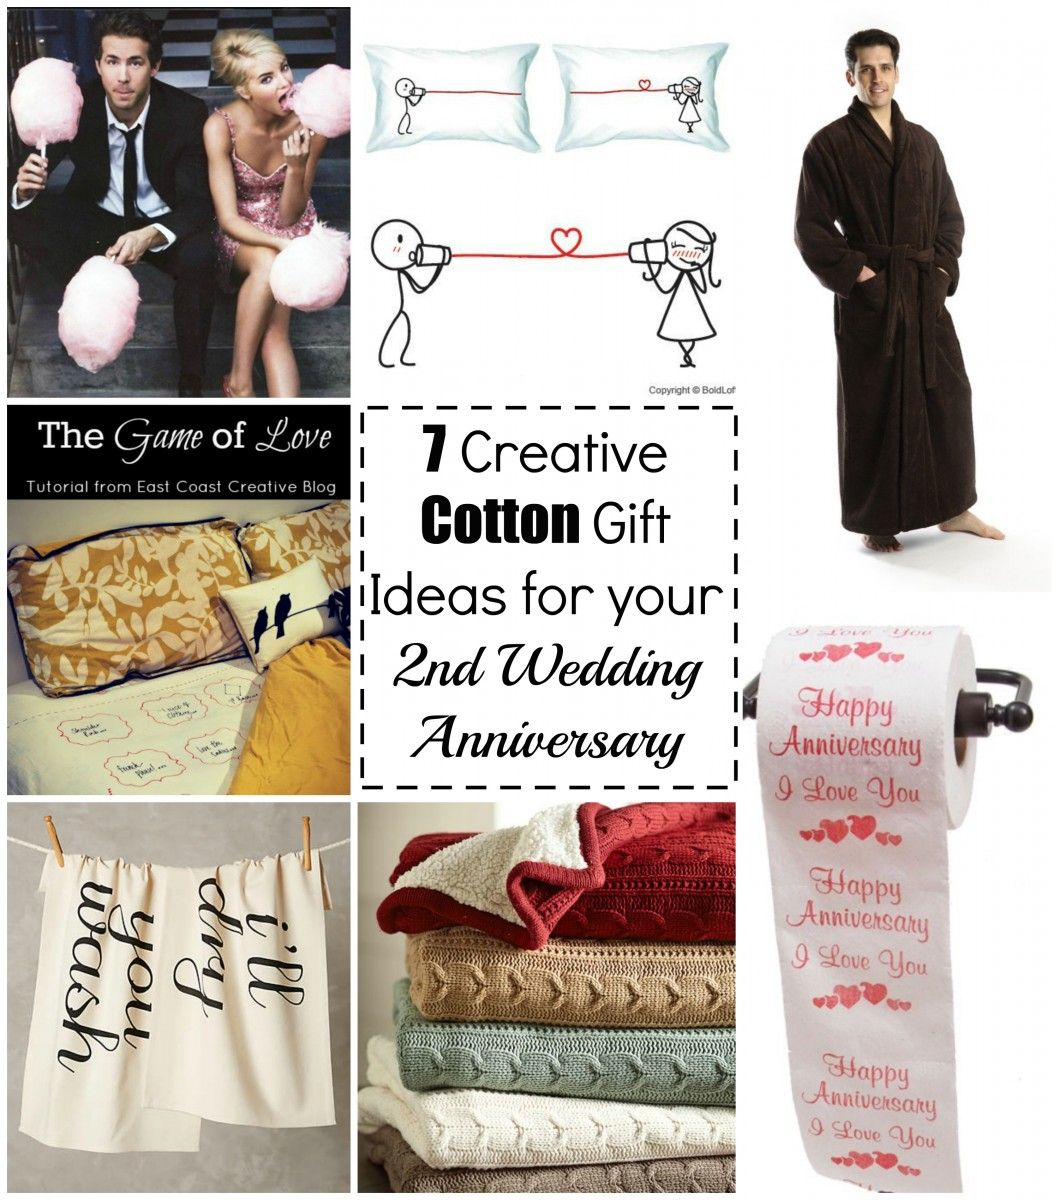 2nd Wedding Anniversary Gifts Uk: 7 Creative Cotton Gift Ideas For Your 2nd Wedding